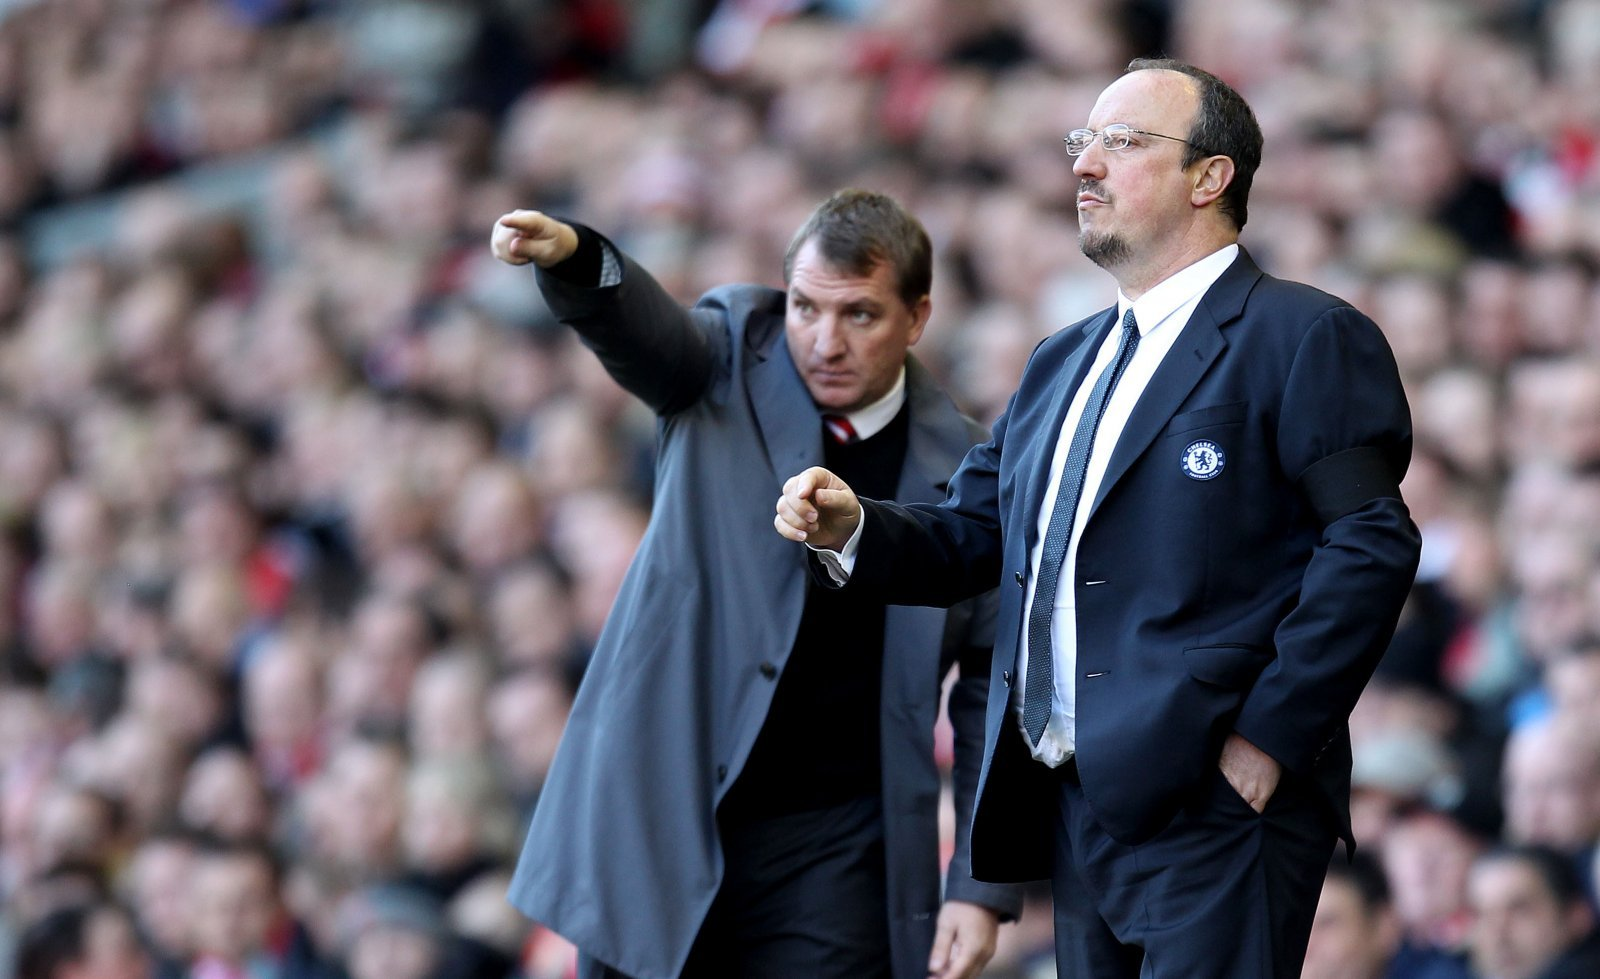 Rafa Benitez is surely a much better choice for Brendan Rodgers at Leicester City